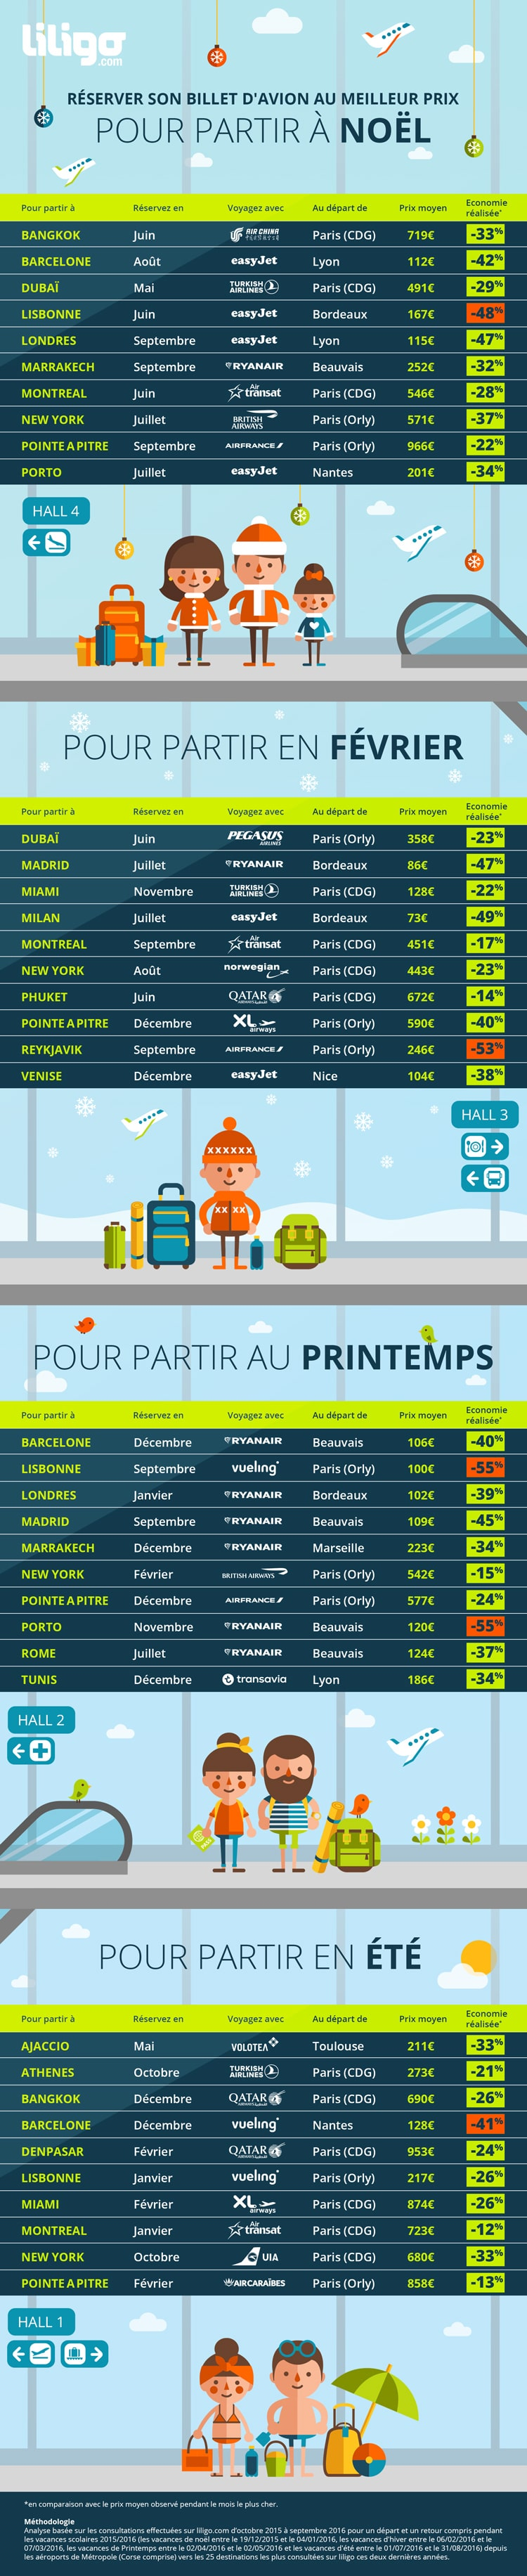 quand-reserver_infographie_global_vdef